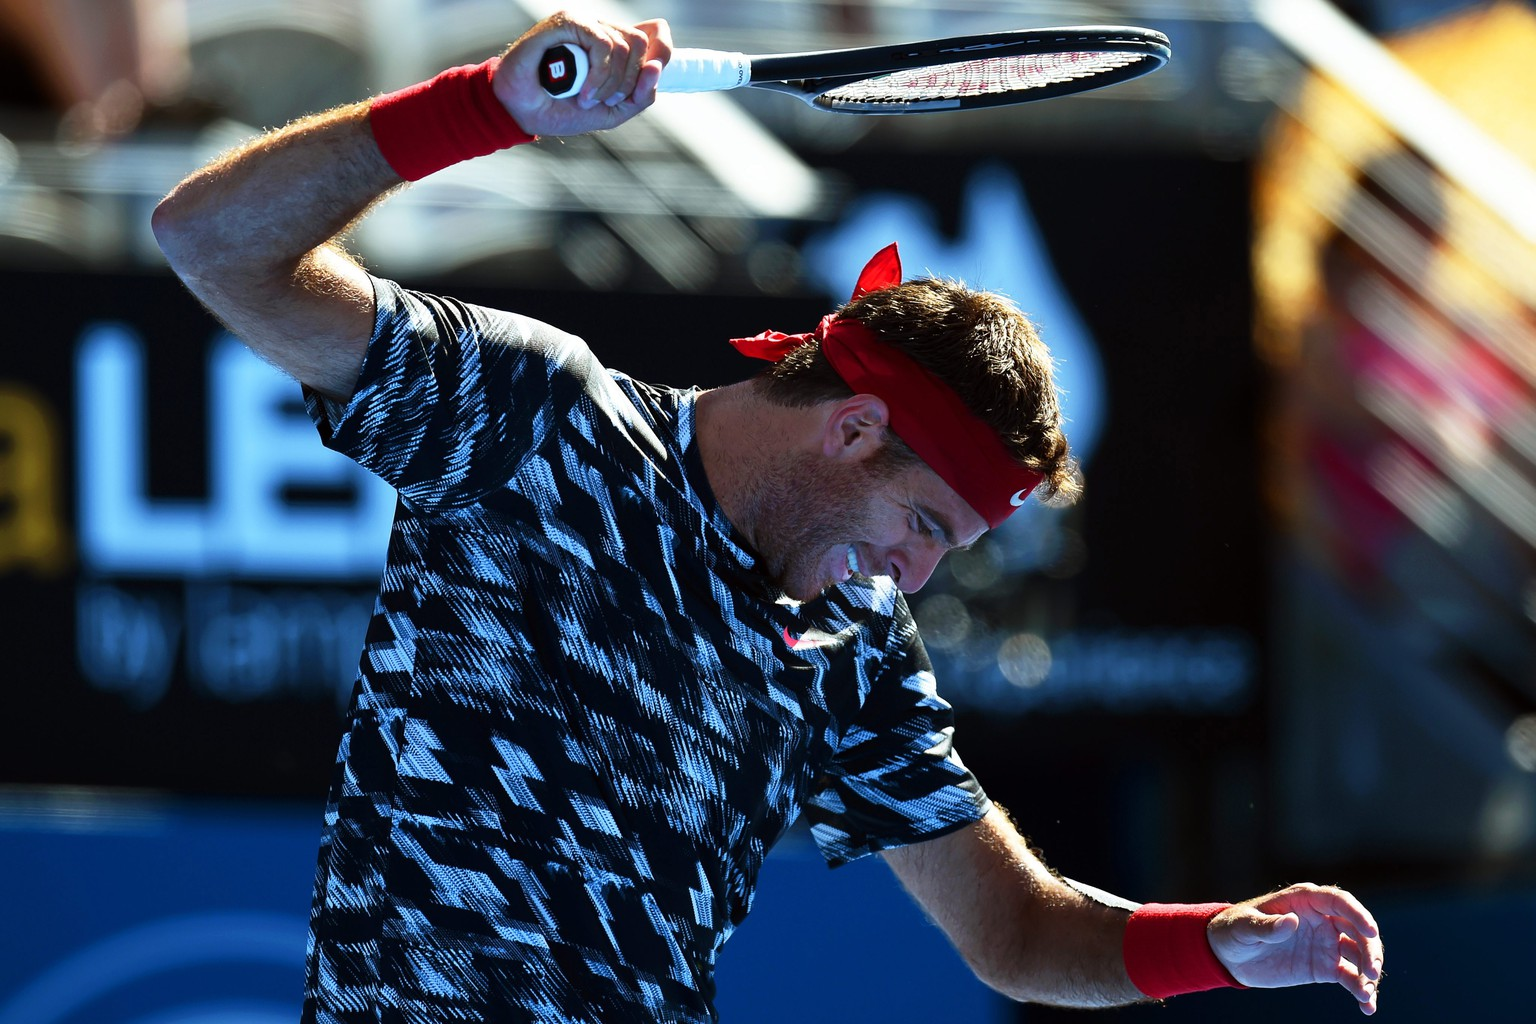 epa04560754 Juan Martin del Potro of Argentina reacts during his quarter final match against Mikhail Kukushkin of Kazakhstan at the Apia International tennis tournament in Sydney, Australia, 15 January 2015.  EPA/DEAN LEWINS AUSTRALIA AND NEW ZEALAND OUT